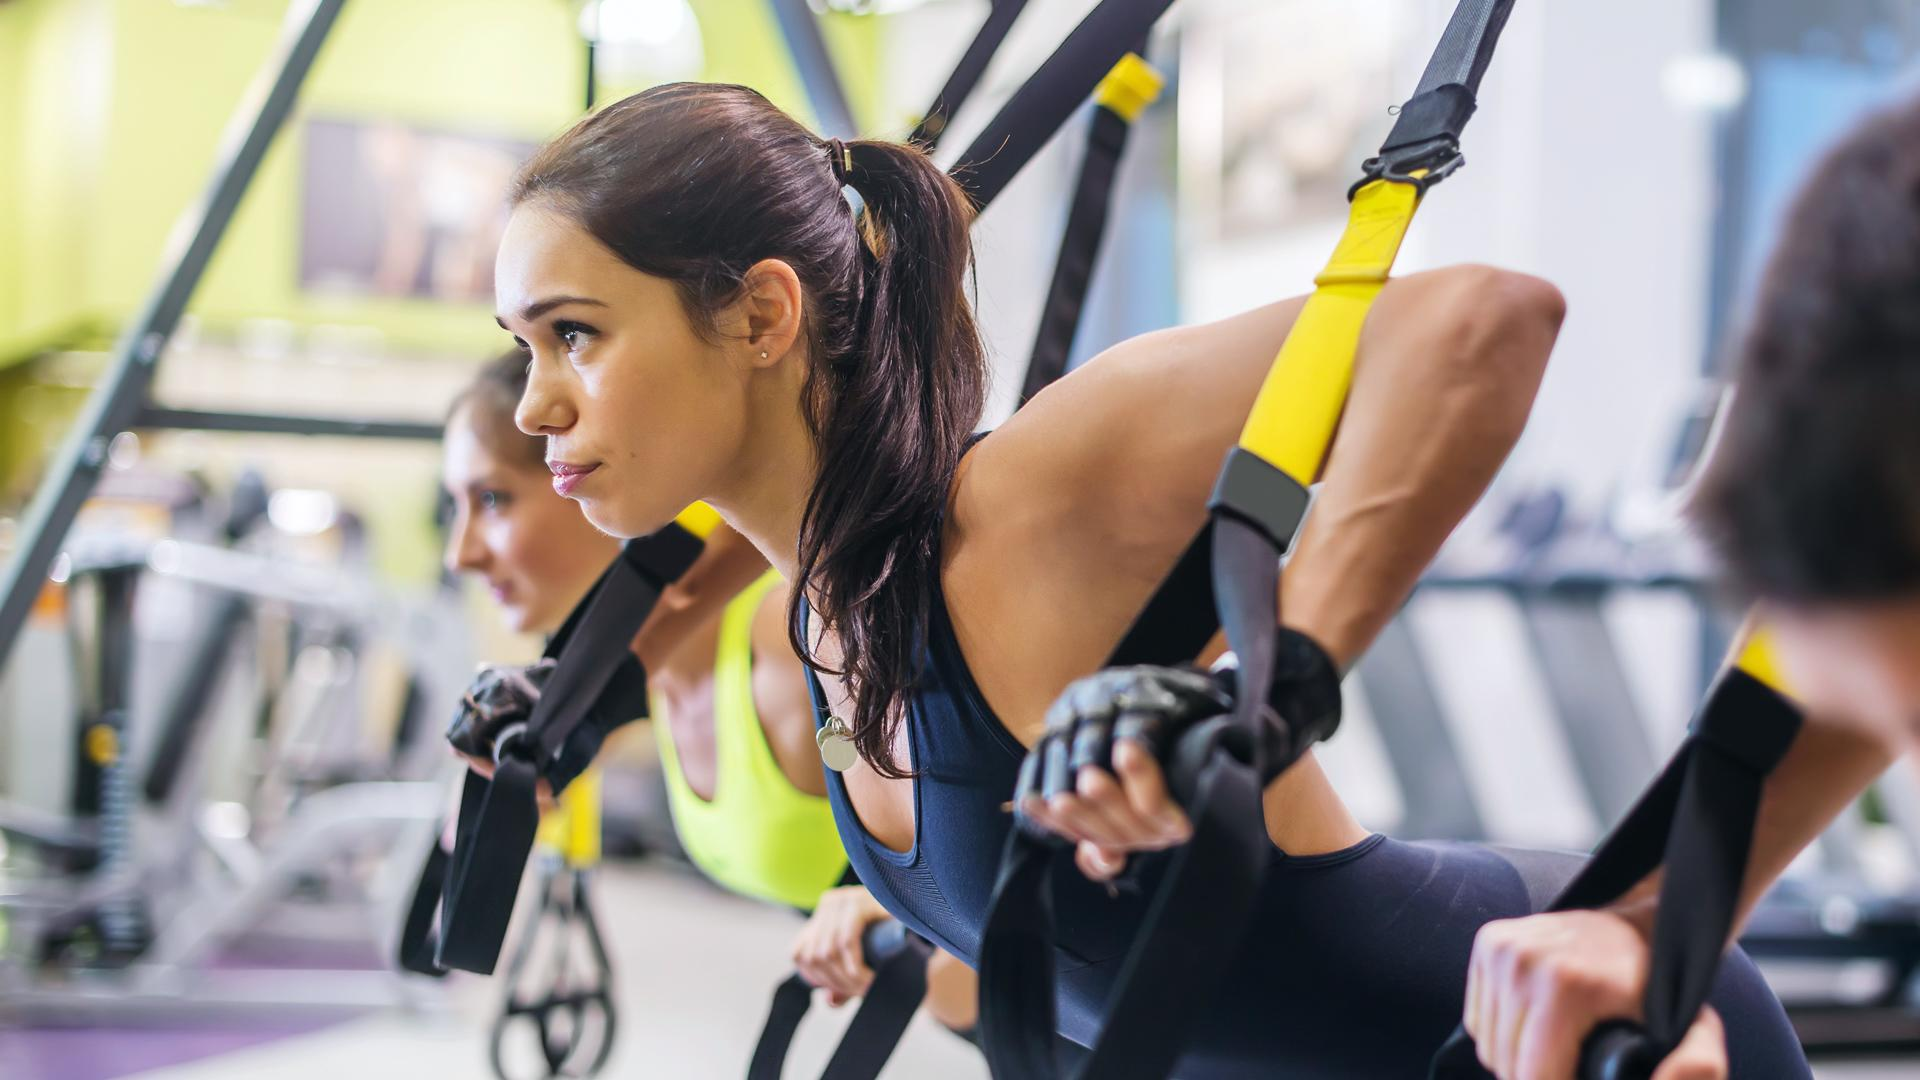 Cheap Gym Membership Options to Help You Keep Your Fitness